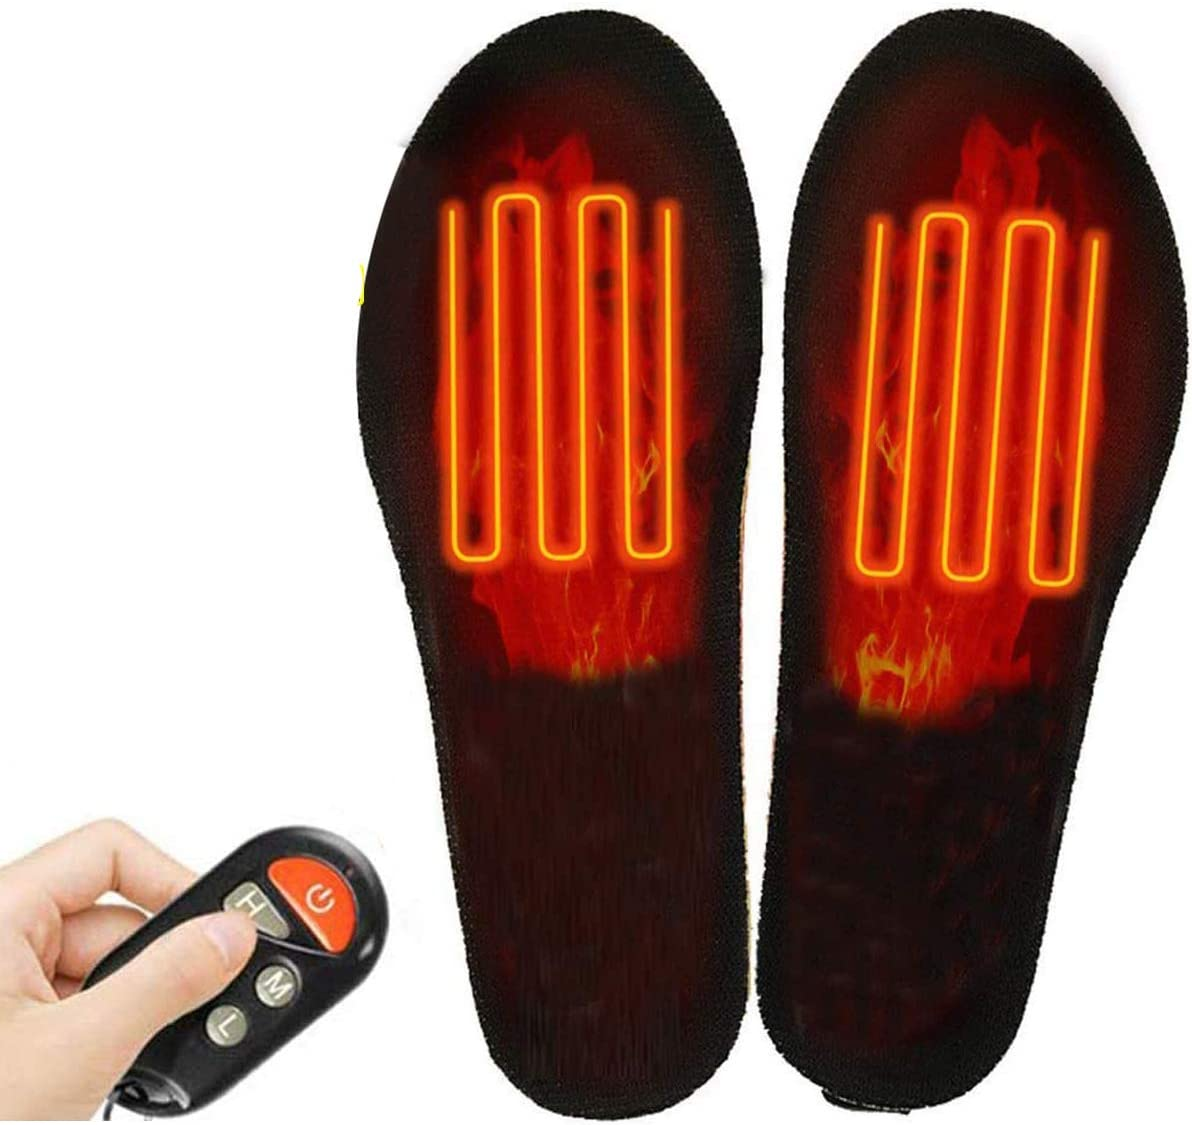 QUUY Remote Control Rechargeable Insole Adjustable Cutting Free Heated Insole Built-in Lithium Battery Electric Heating Insole Waterproof Electric Heated Feet Warmer Insole Heater